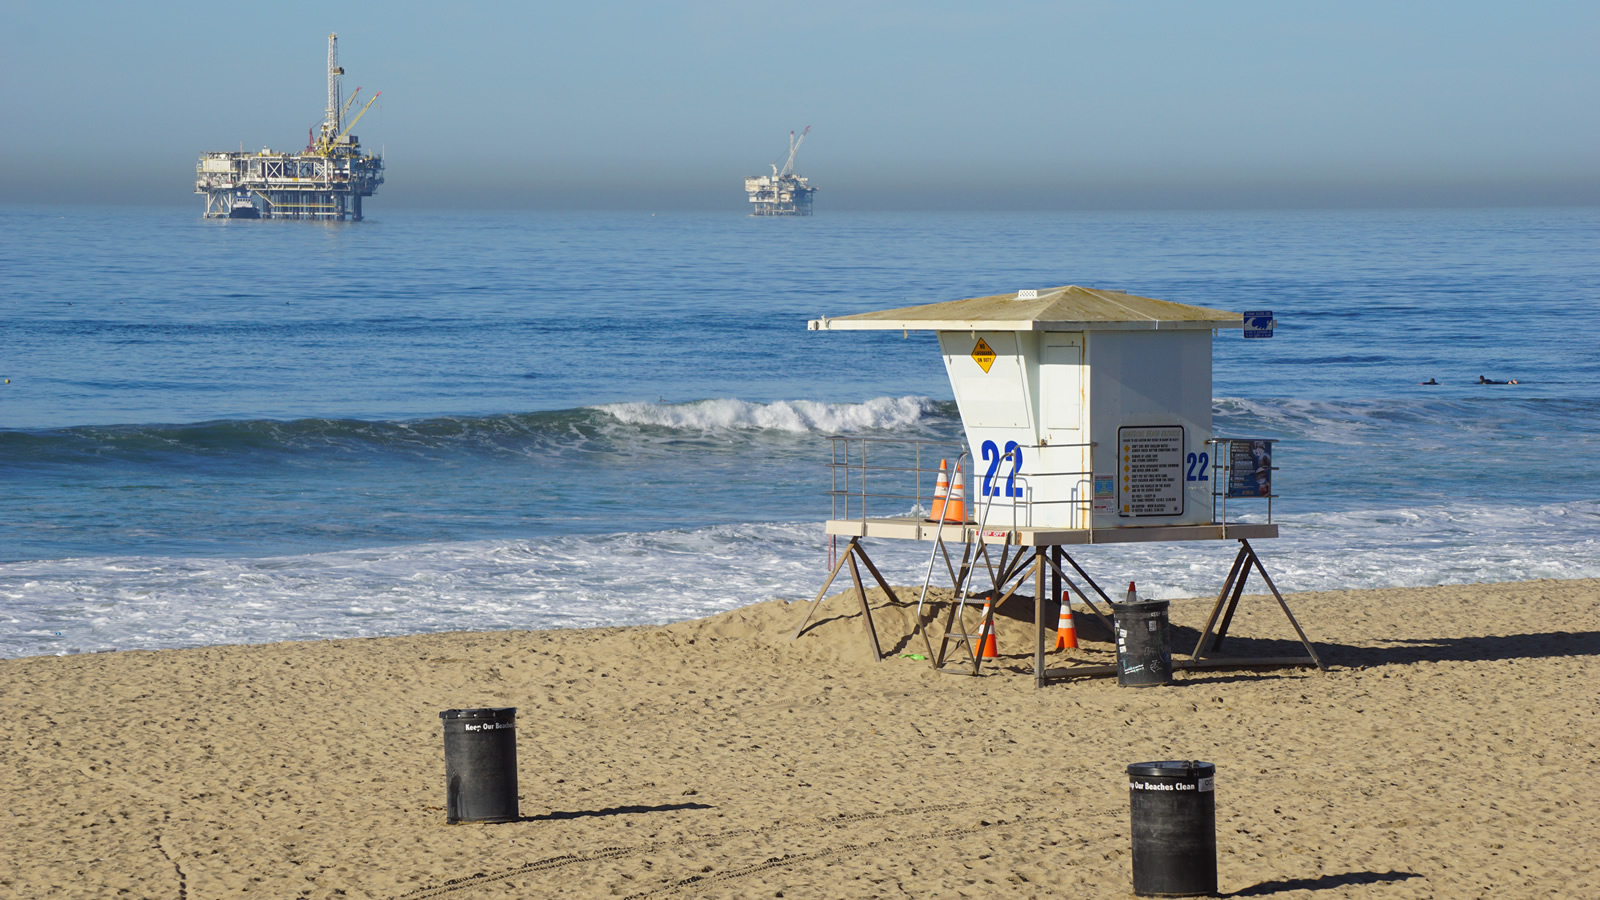 <h4>A LEAVE NO BEACH UNSPOILED PLAN</h4><h5>The Trump administration's plan would allow oil and gas exploration and drilling in 90 percent of our coastal waters—across the entire Atlantic Seaboard, the entire Gulf of Mexico, the entire Pacific Coast, and Alaska's Arctic Coast.</h5><em>J.D.S. via Shutterstock</em>